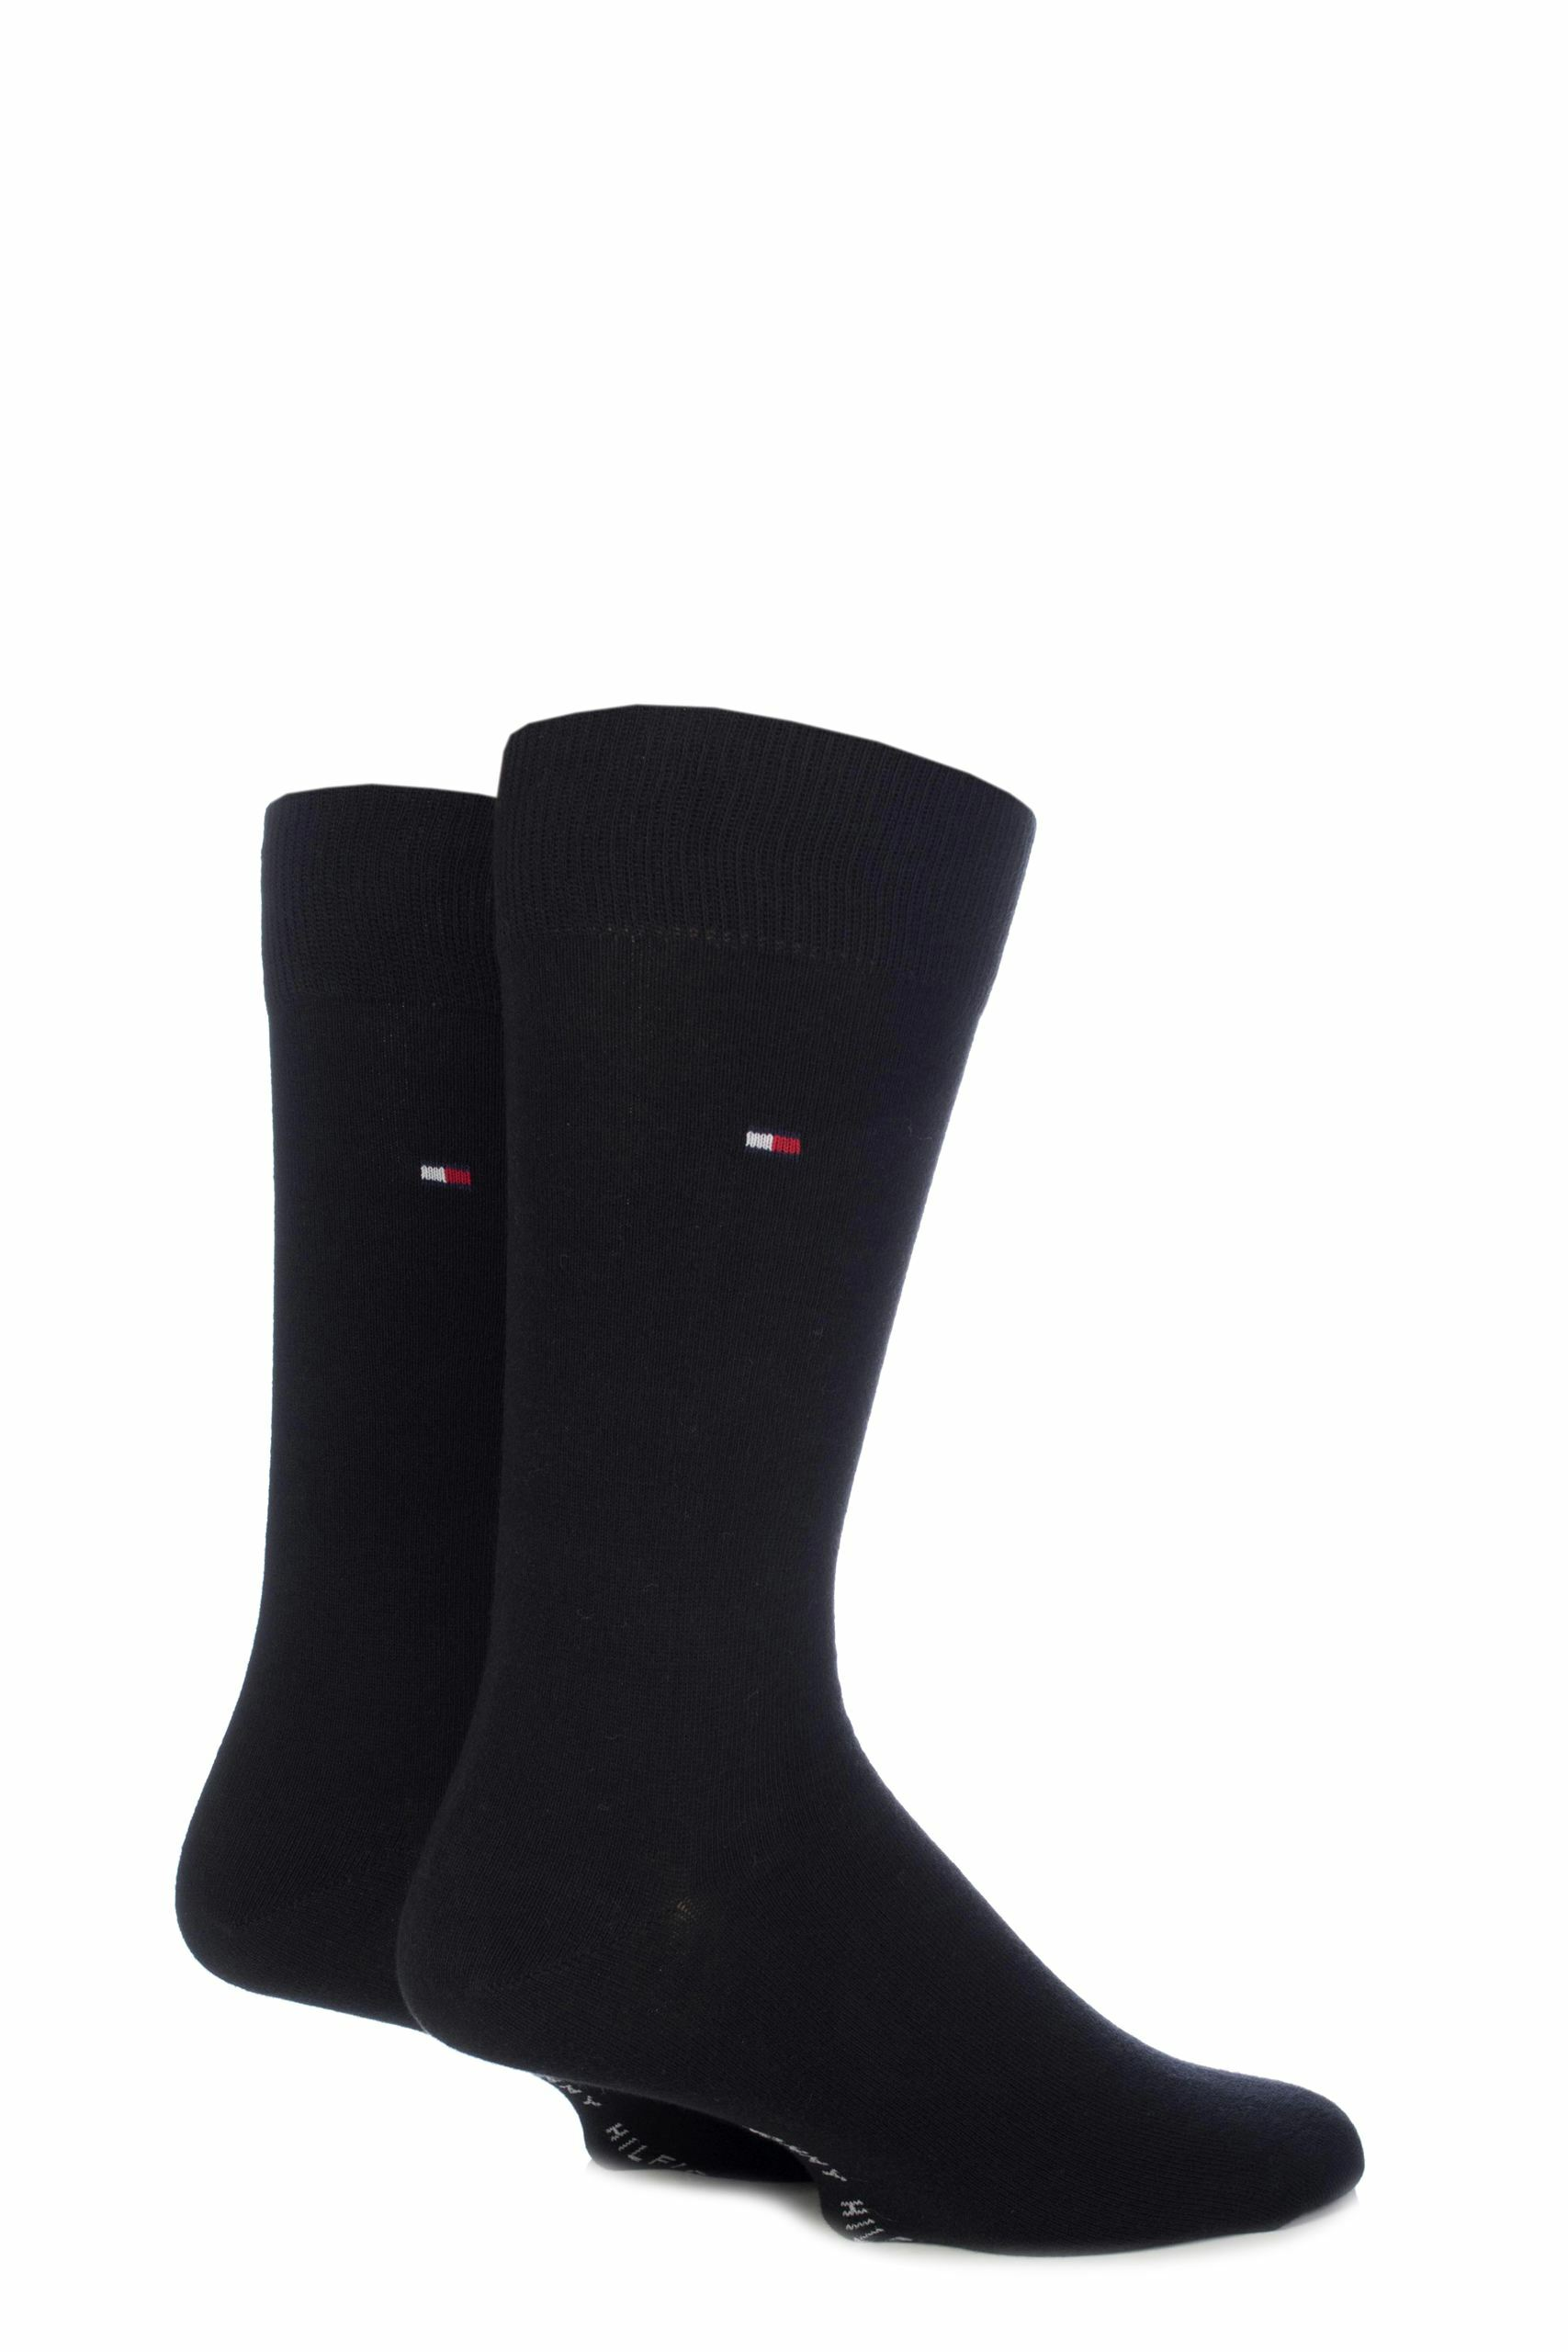 Image of 2 Pair Black Classic Plain Cotton Socks Men's 12-14 Mens - Tommy Hilfiger